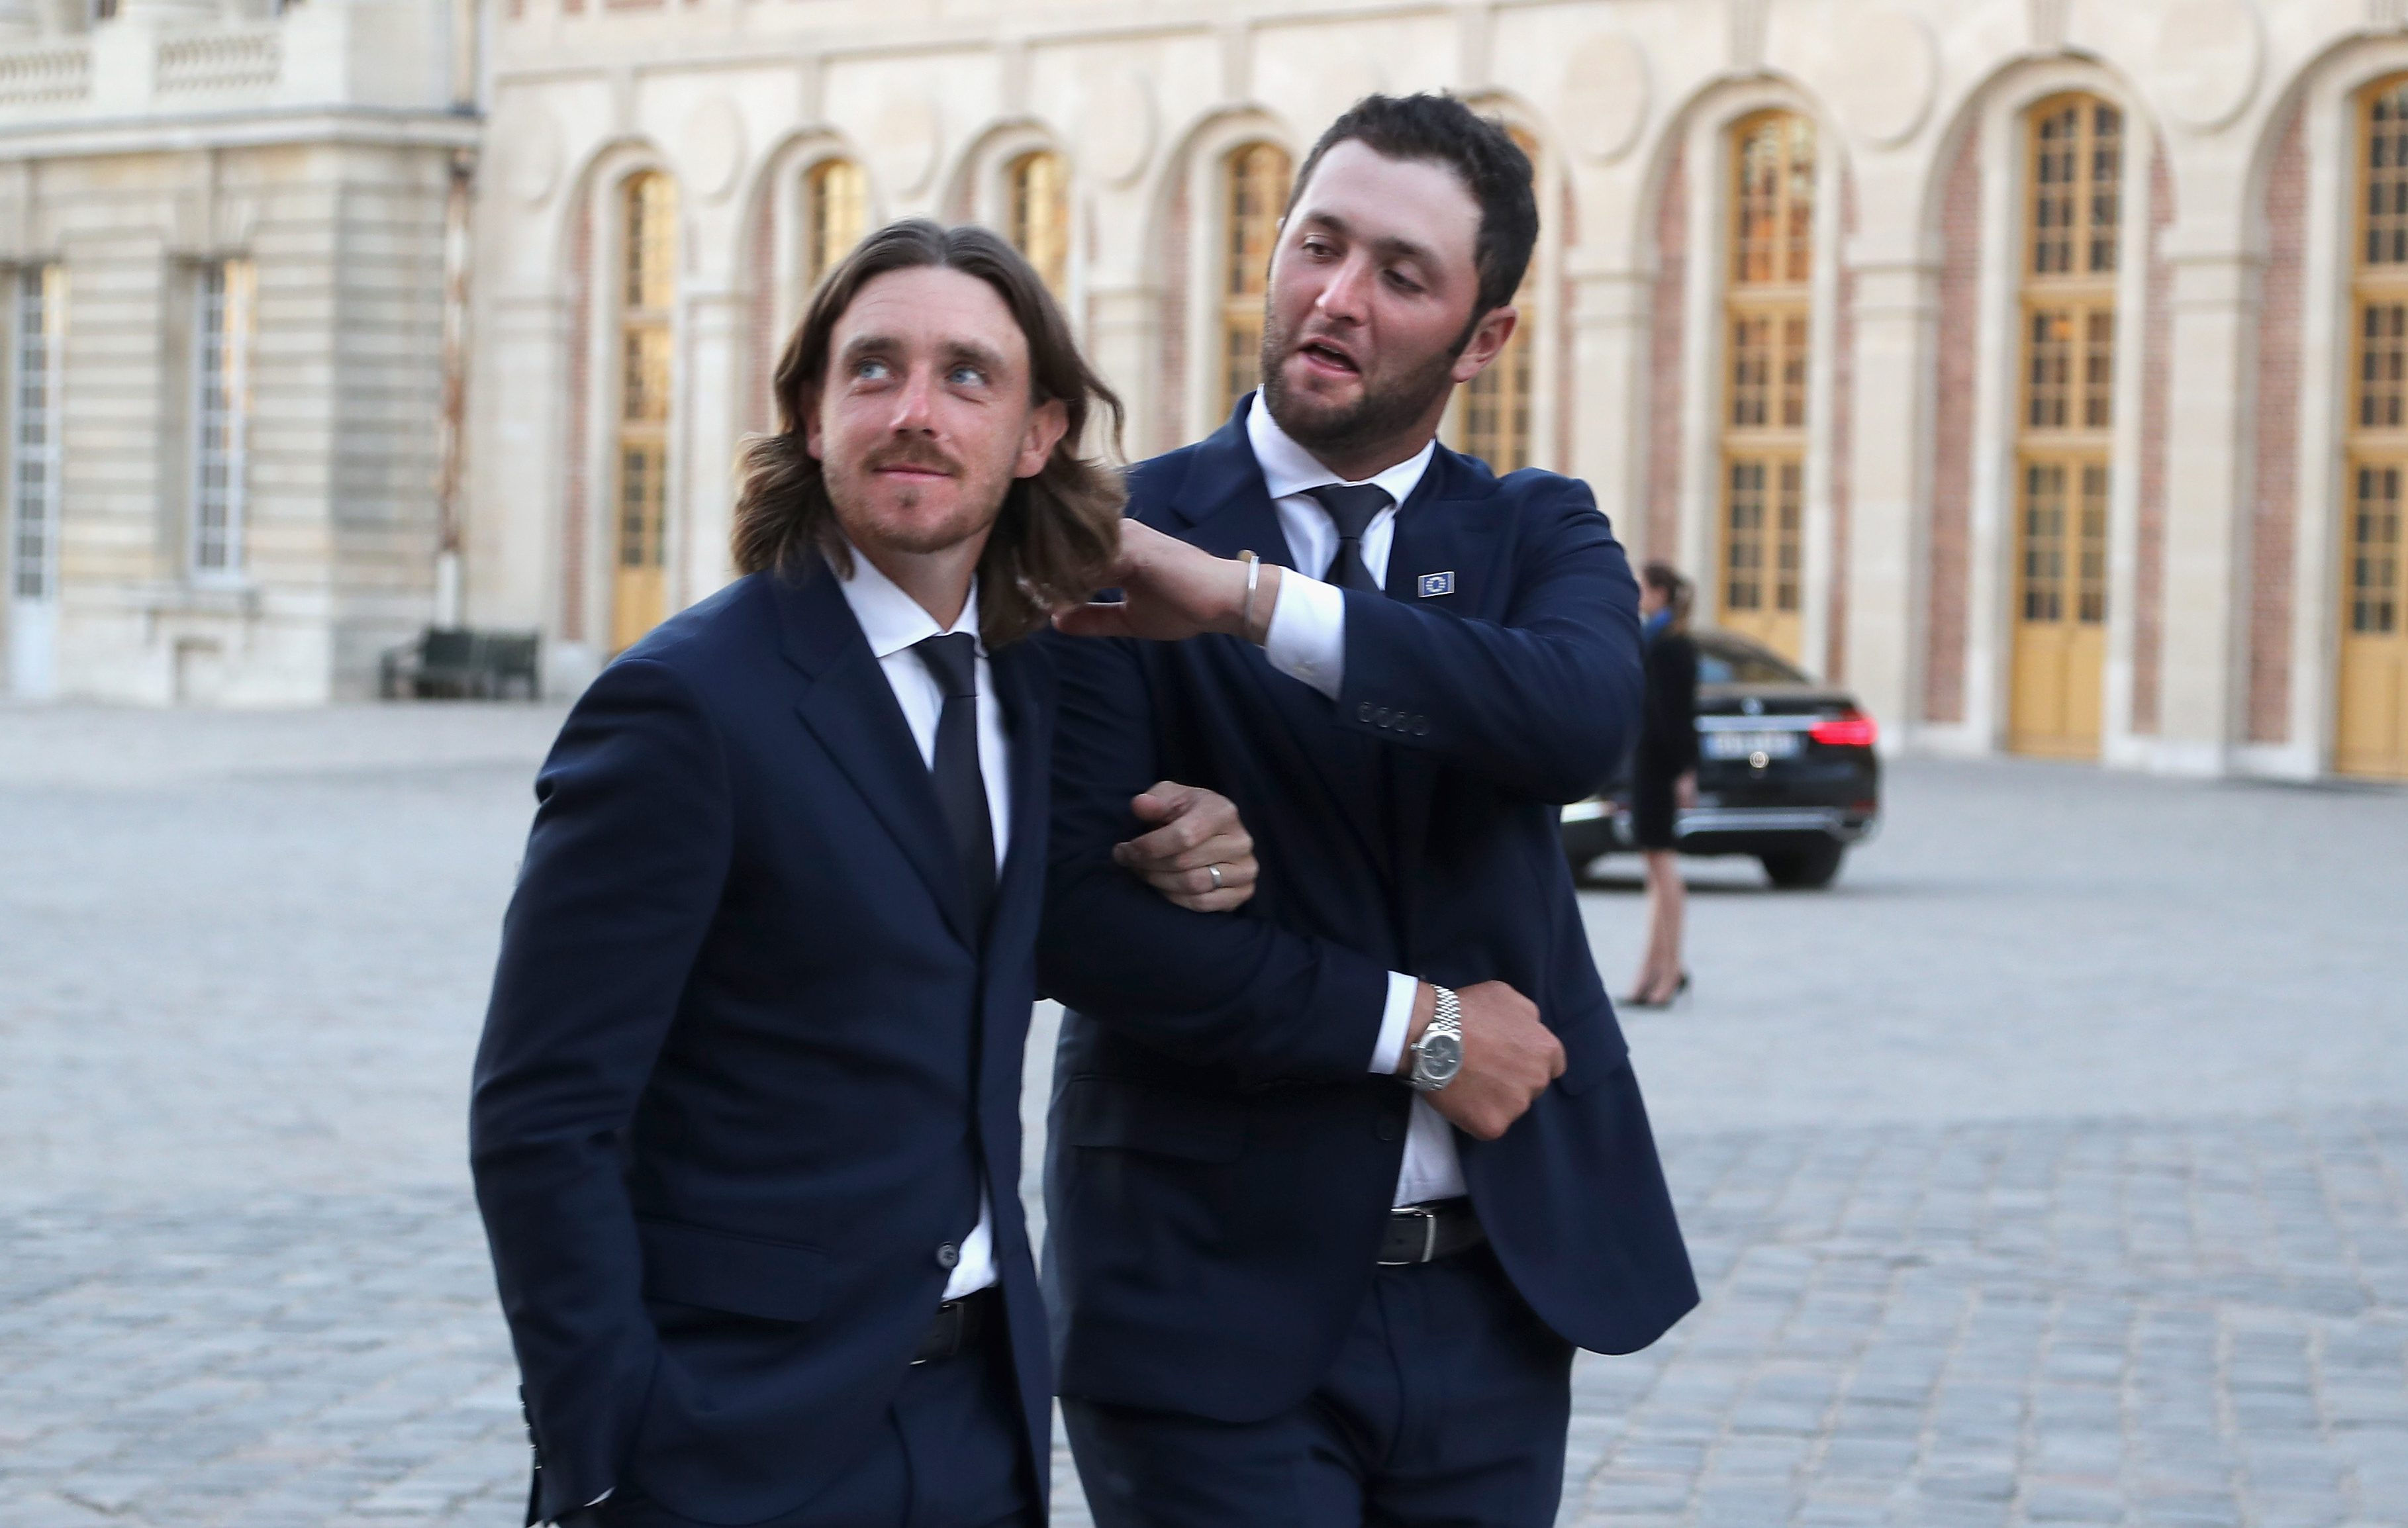 VERSAILLES, FRANCE - SEPTEMBER 26: Tommy Fleetwood and Jon Rahm of Team Europe walk in arm and arm to the Palace of Versailles for the Ryder Cup Gala dinner ahead of the 2018 Ryder Cup on September 26, 2018 in Versailles, France. (Photo by Richard Heathcote/Getty Images)